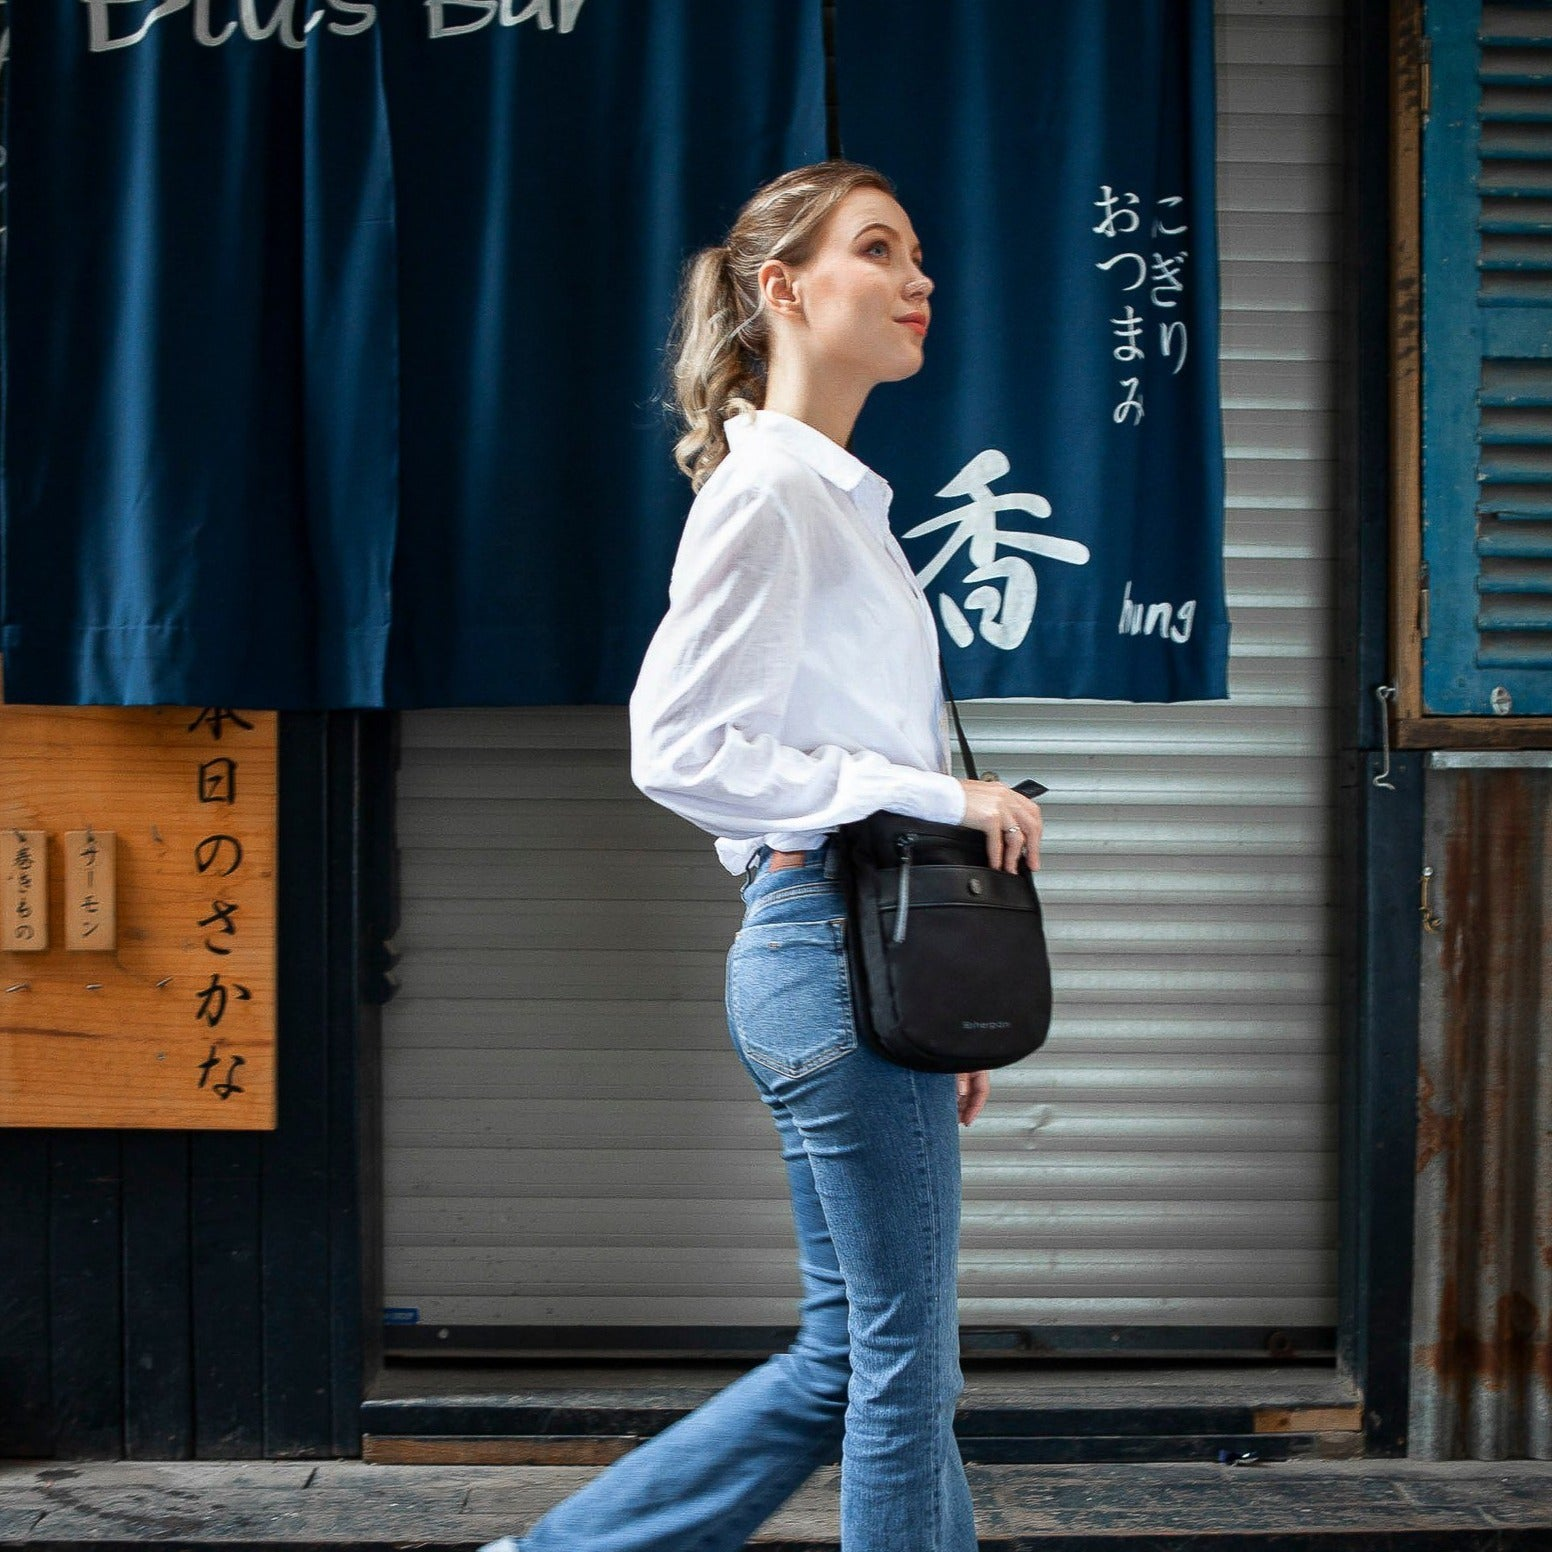 Black Anti-theft Crossbody with anti-theft features on a woman on street